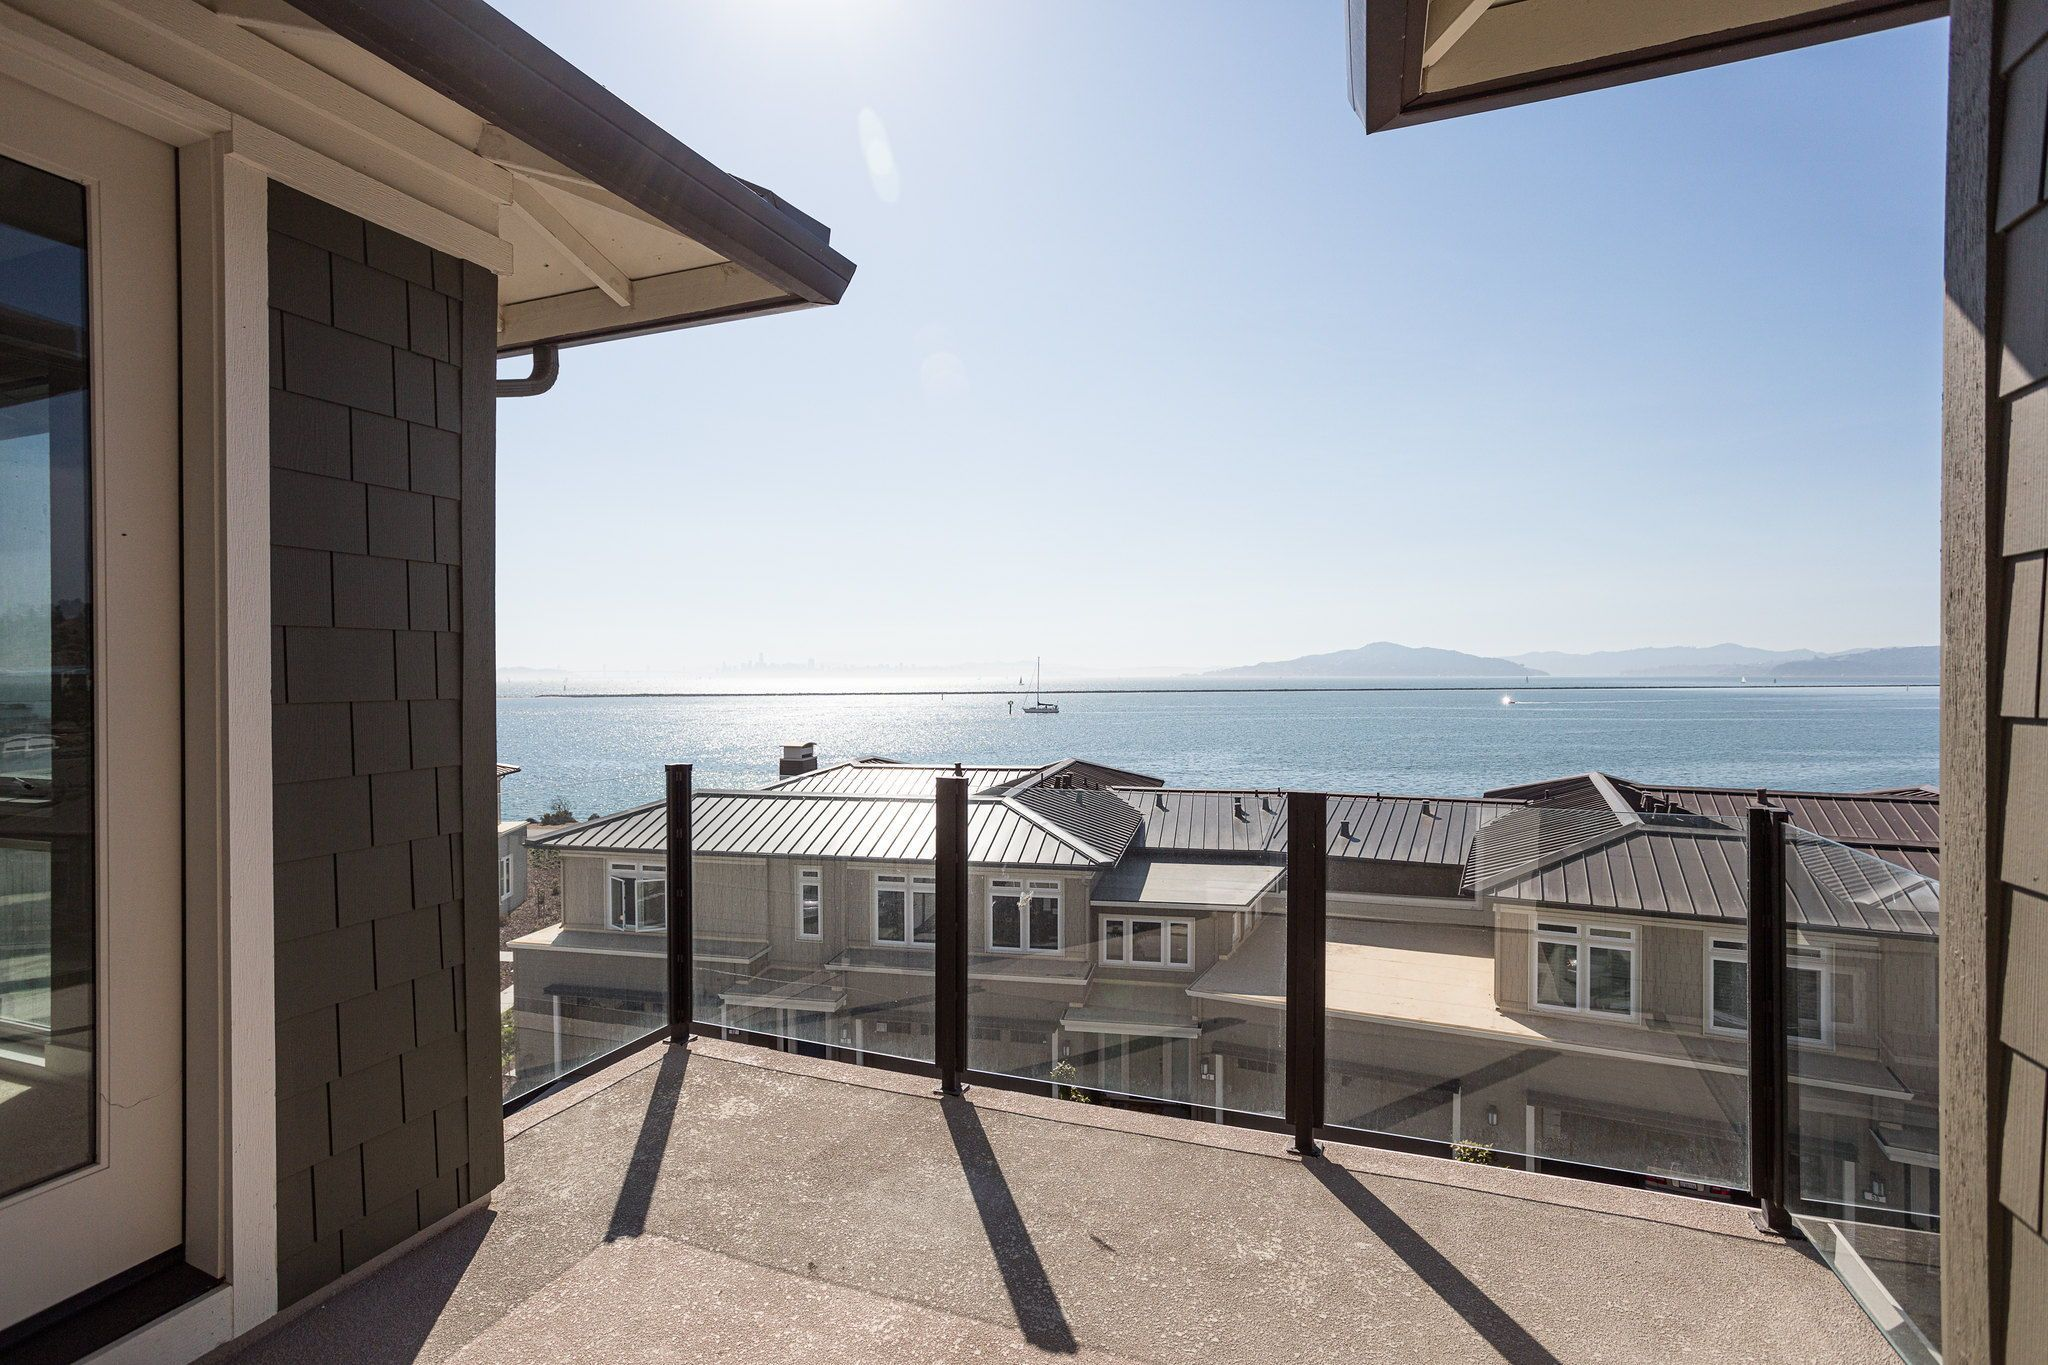 Waterline in Point Richmond, CA by Shea Homes | Residence 4 Deck #SheaHomes #SheaHomesNorCal #SheaHomeowners #SheaNorCal #LiveTheSheaDifference #NorCalHomes #NorCalRealEstate #BayAreaRealEstate #BayAreaNewHomes #HomeDesignInspiration #HomeInspiration #Waterline #PointRichmond Sales: Shea Homes Marketing Company (CalDRE #01378646); Construction: Shea Homes Limited Partnership (CSLB #855368). Equal Housing Opportunity.